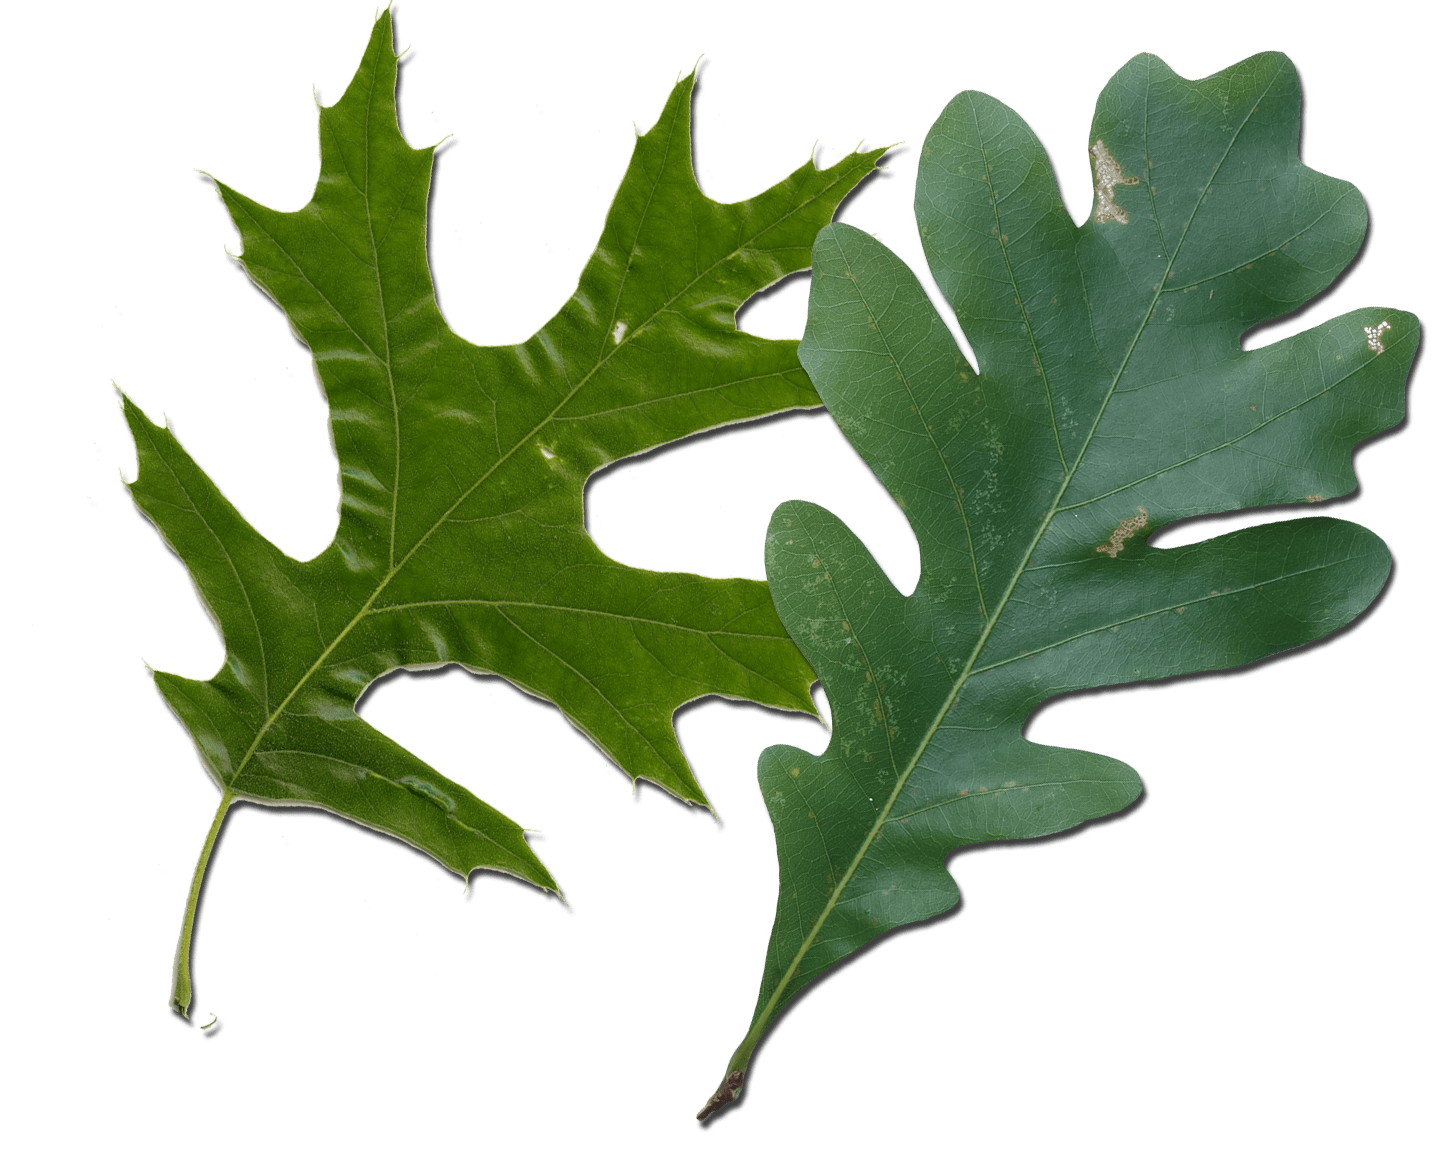 white oak christian personals Red oak vs white oak leaves: do you know the difference between a red oak leaf and a white oak leafjust think of cowboys and indians red oak vs white oak leaves with it being fall, i figured i would share this blog post again this old blog post from 2009 to show you a quick way to tell a red oak from a white oak red oak leaves.